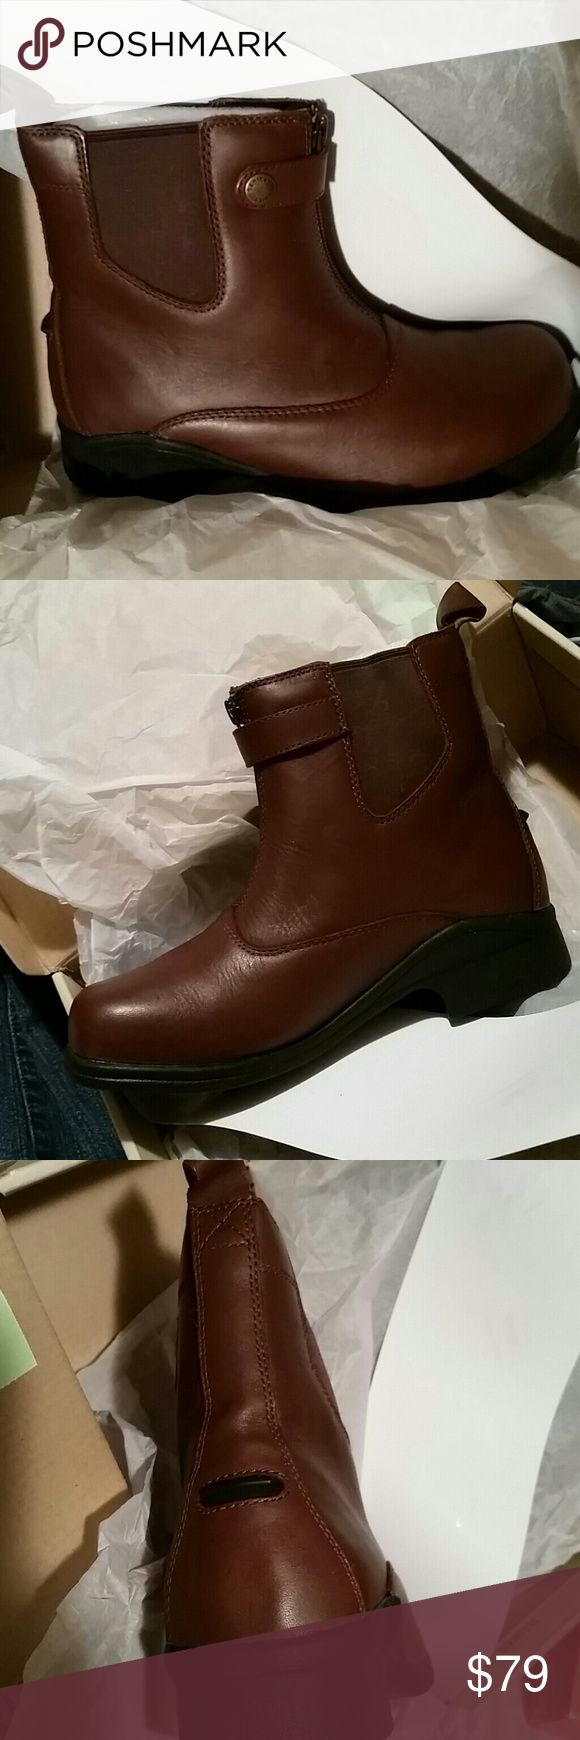 NIB Sanita Boots size 6.5 New in box Brown Sanita boots front zip they come a few inches above the ankle size 6.5 Sanita Shoes